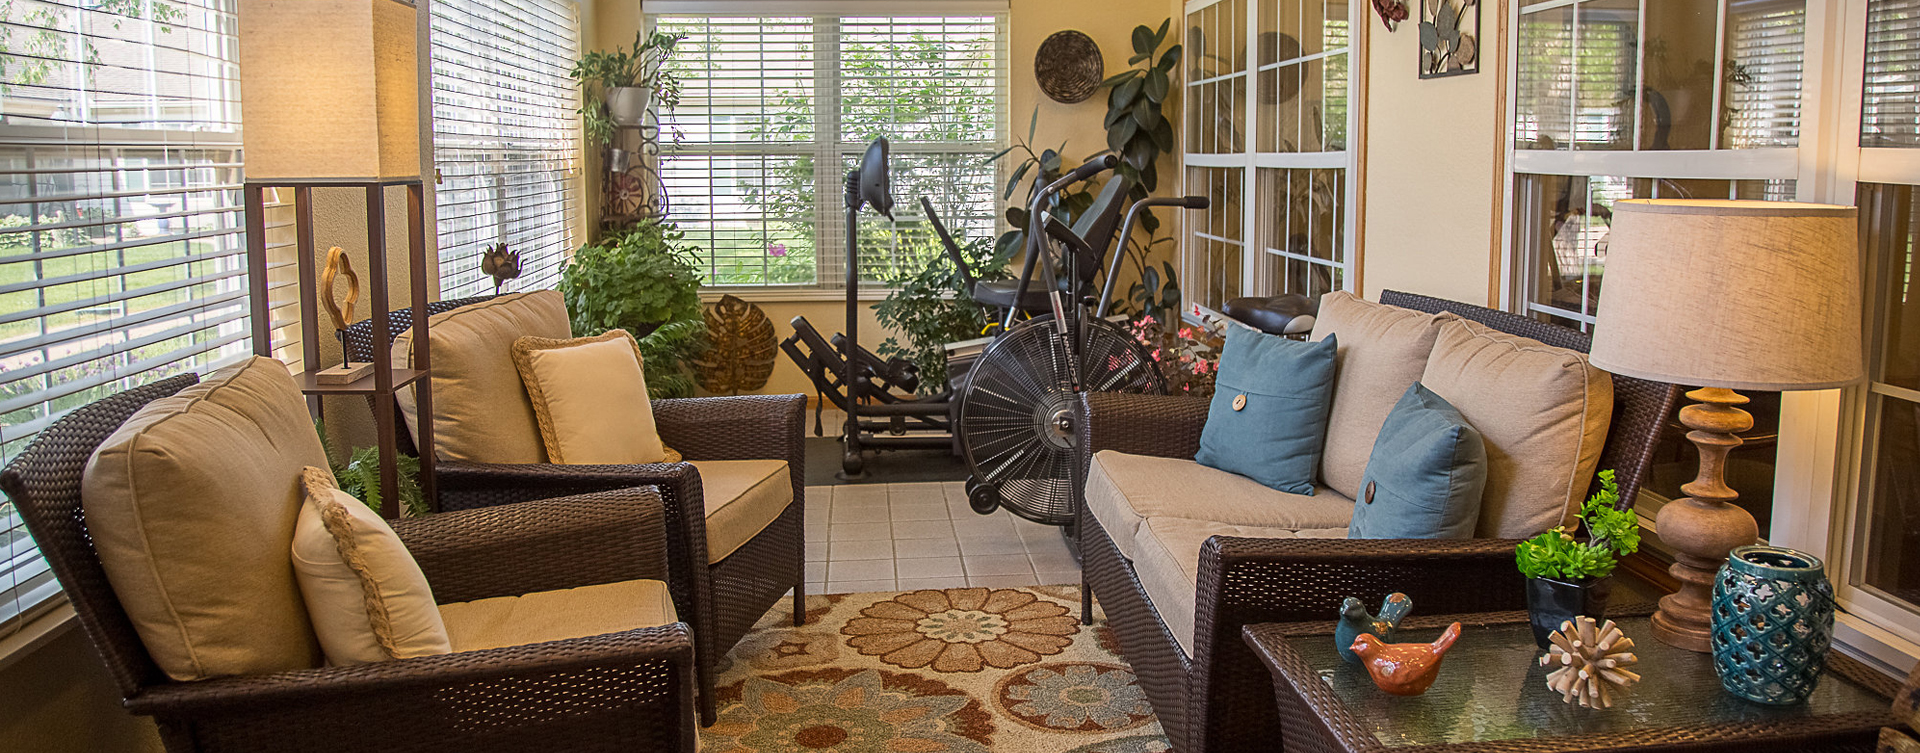 Enjoy the view of the outdoors from the sunroom at Bickford of Burlington